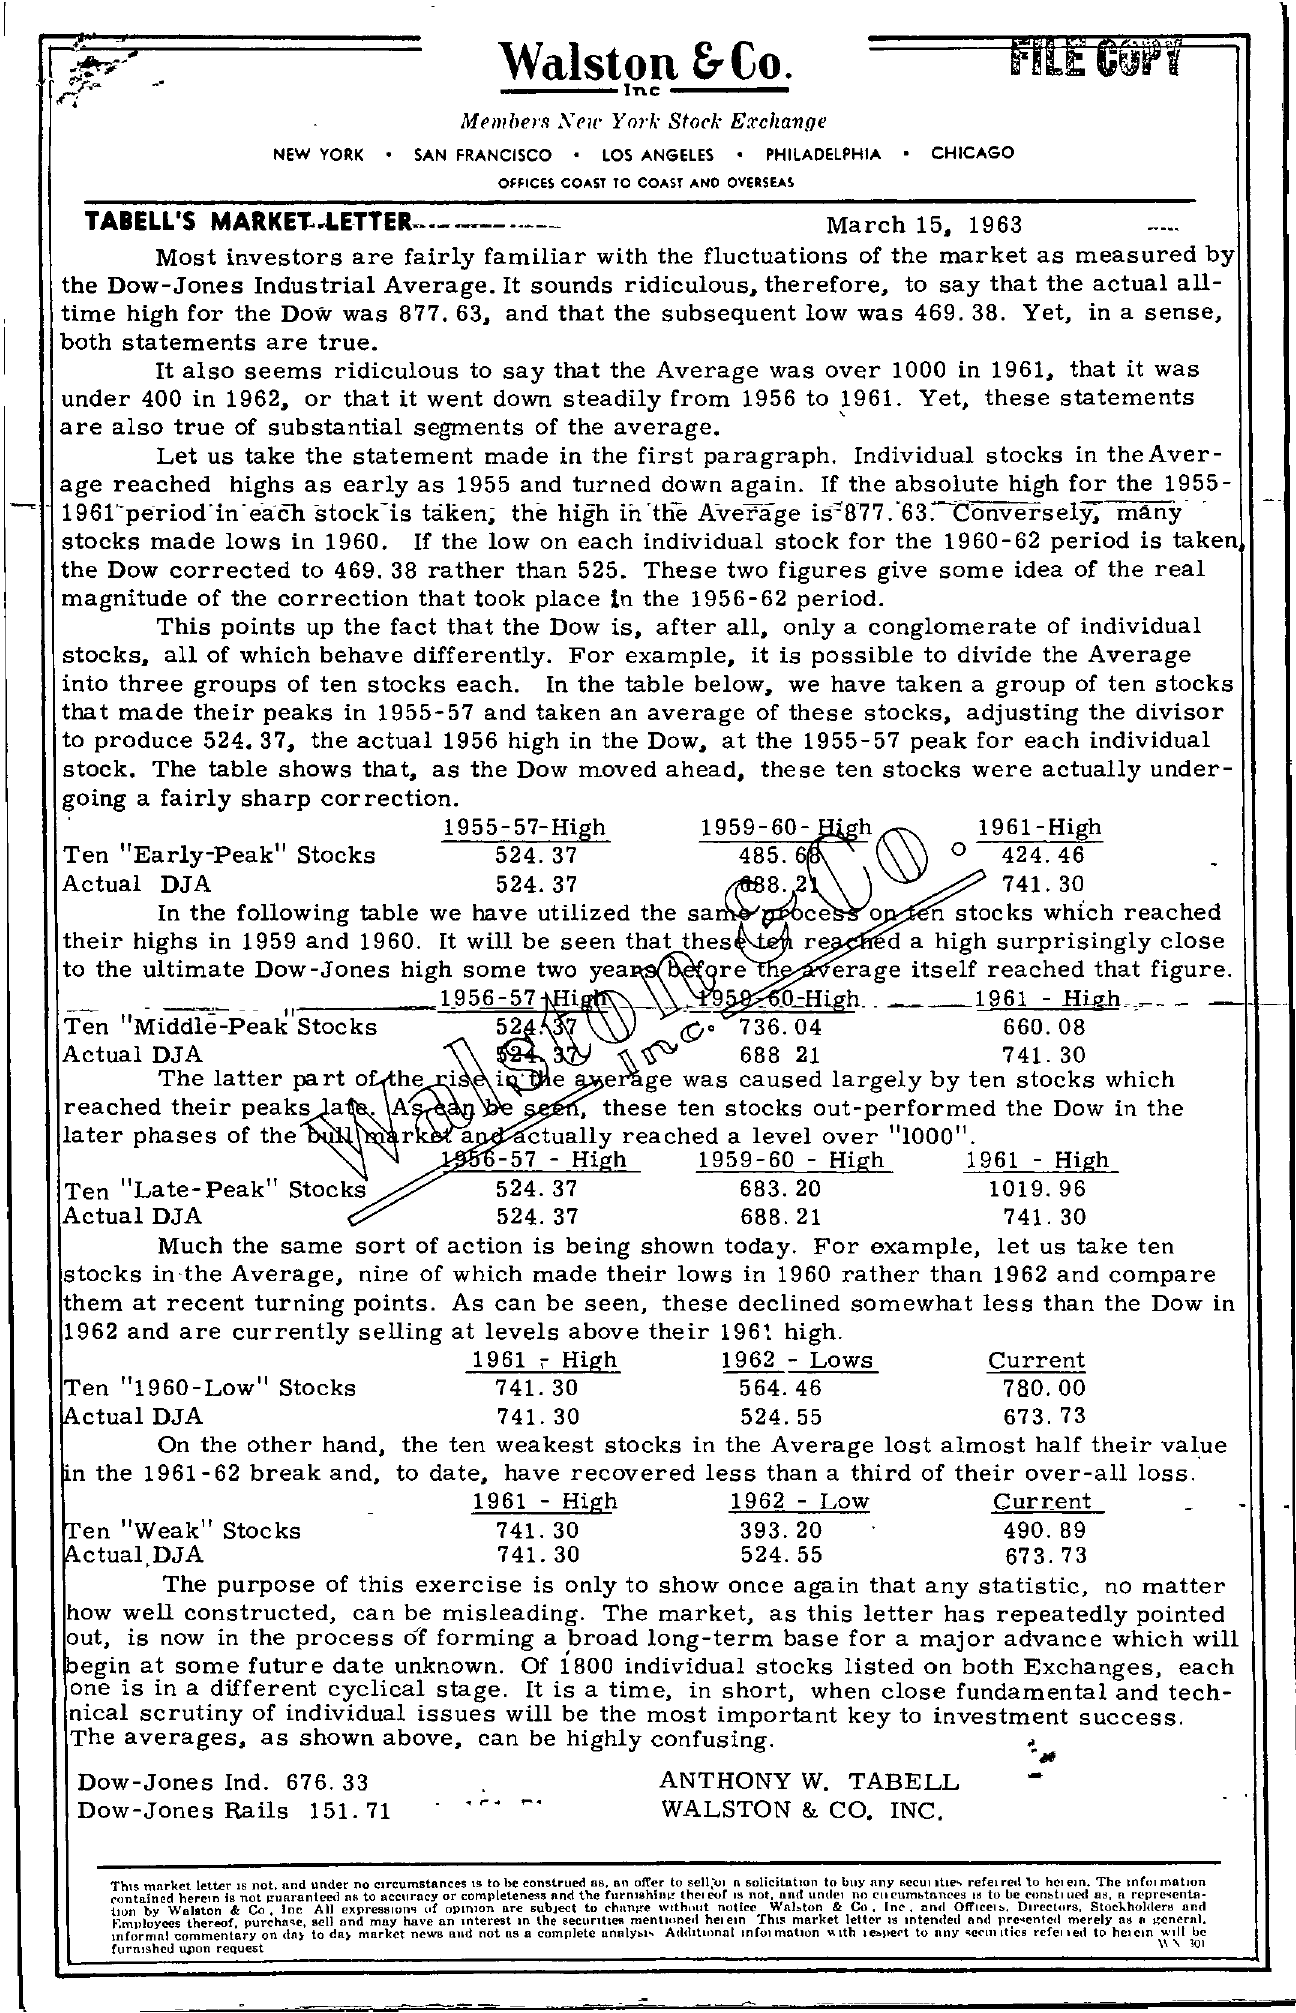 Tabell's Market Letter - March 15, 1963